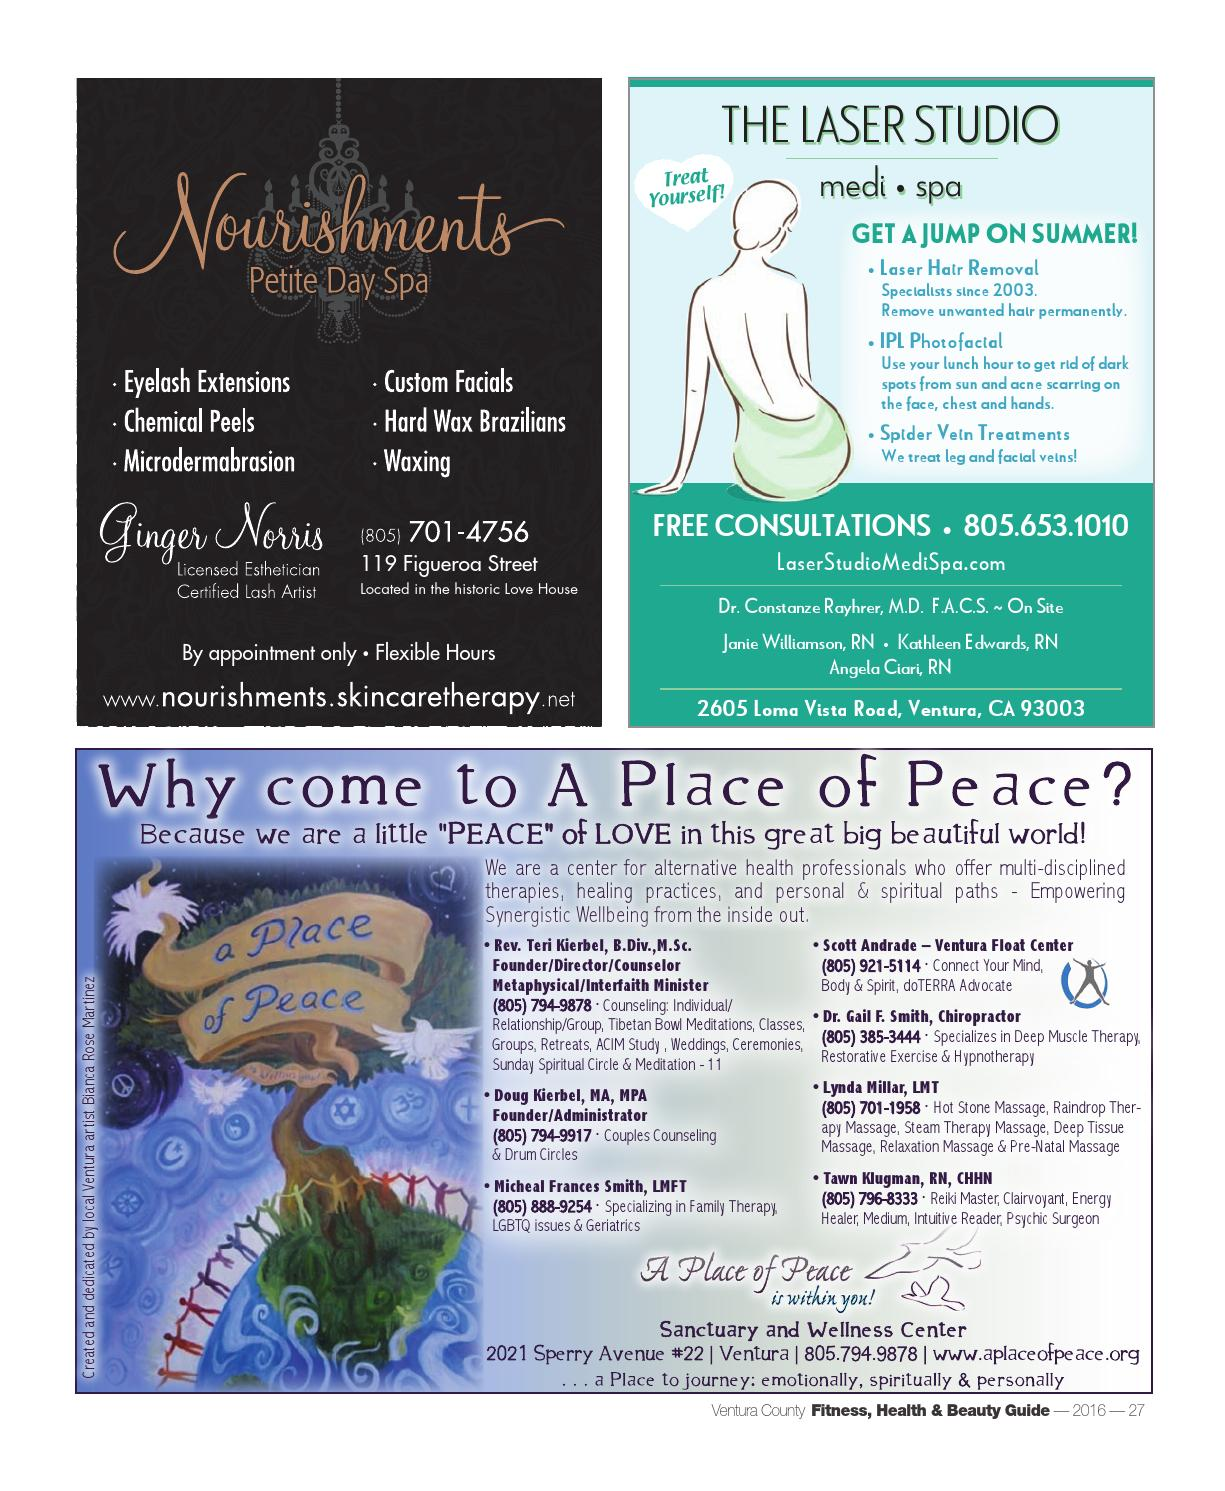 Ventura County's Fitness Health & Beauty Guide 2016 by